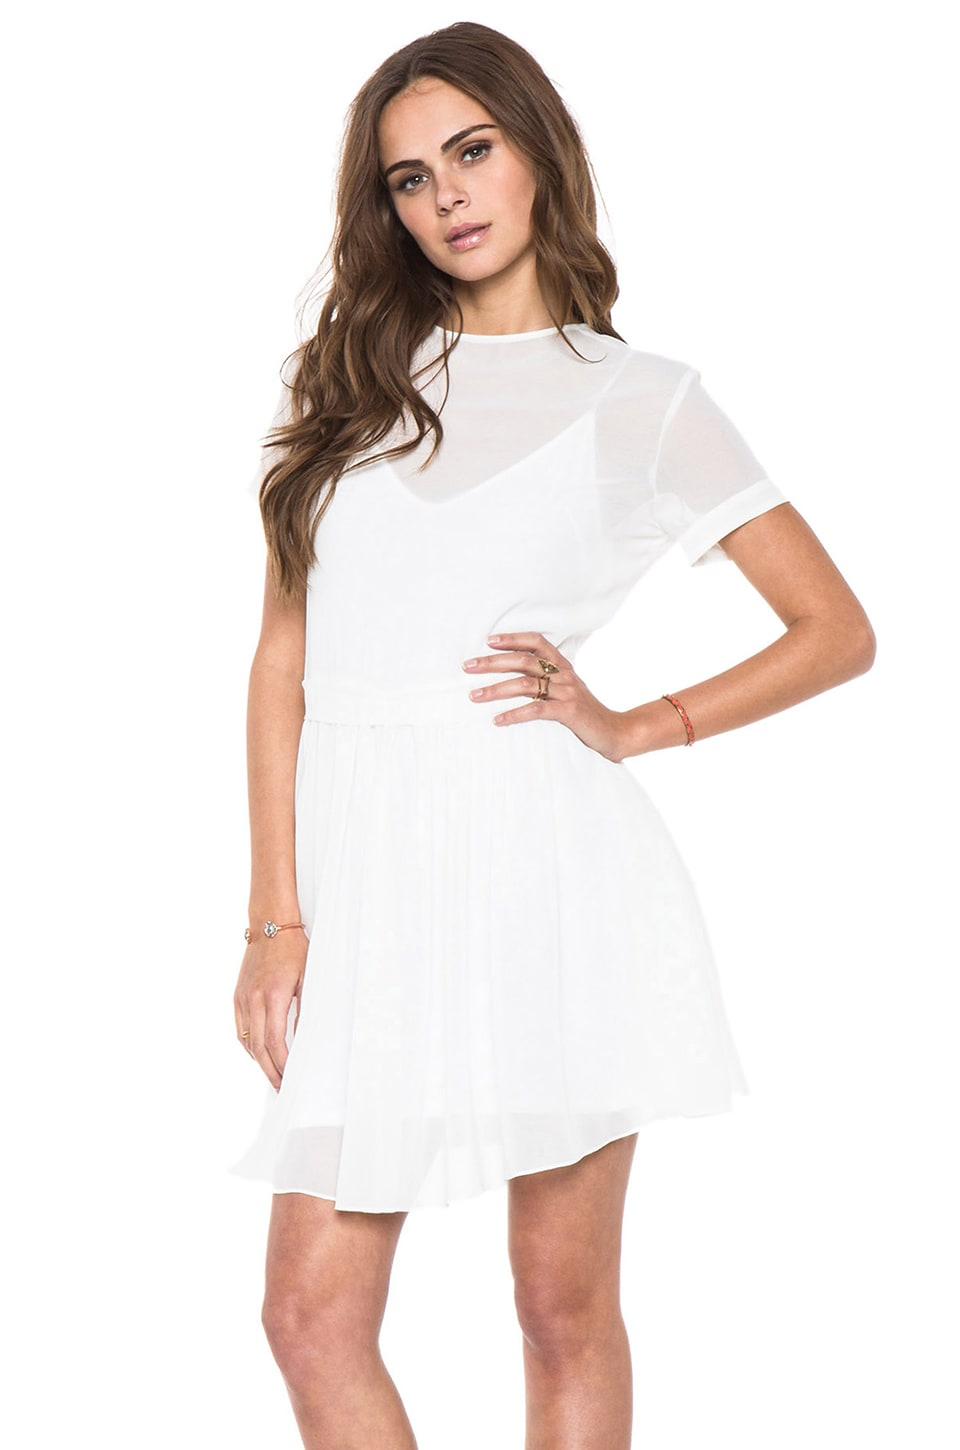 Dolce Vita Scott Short Sleeve Dress in White